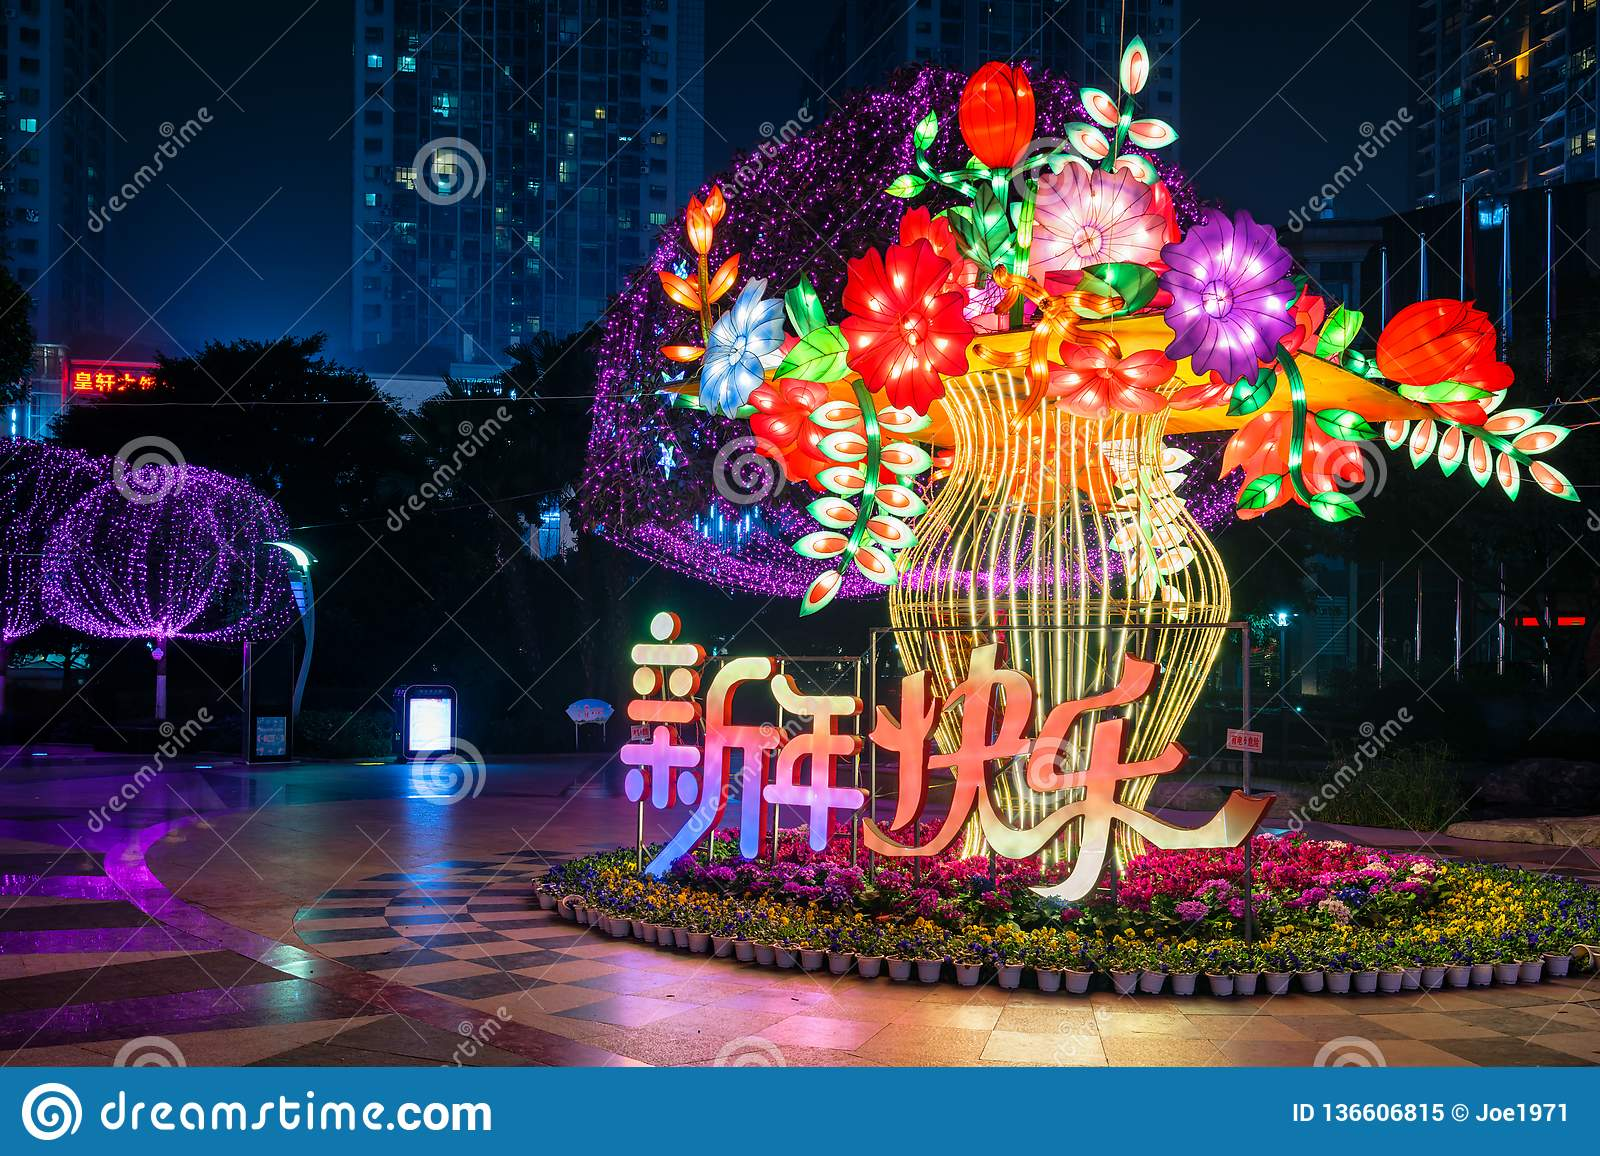 Traditional Chinese Flower Lantern Light Up in City